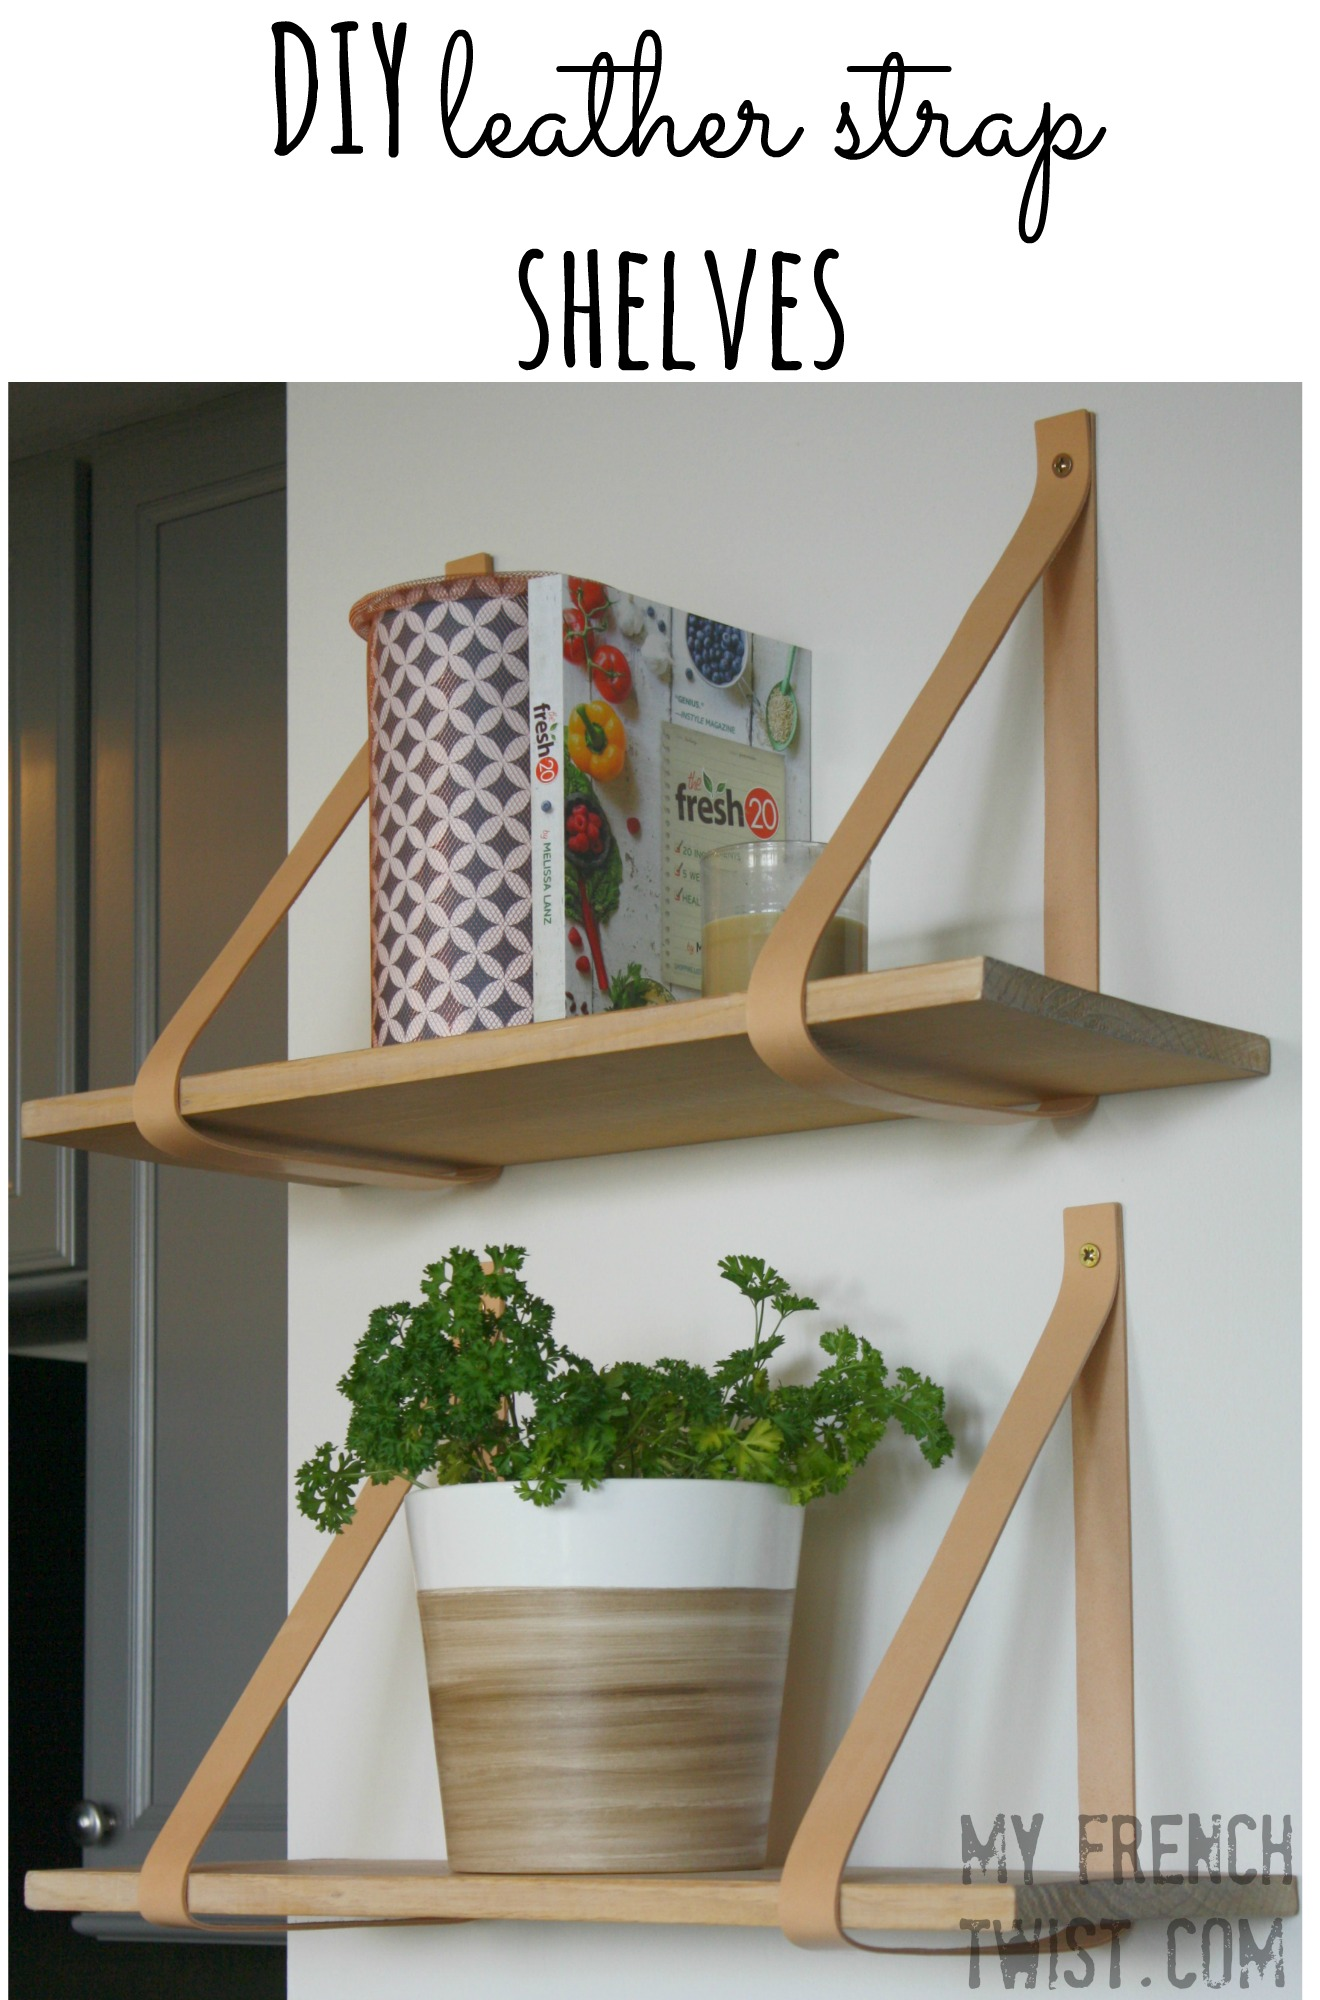 leather strap shelves - myfrenchtwist.com